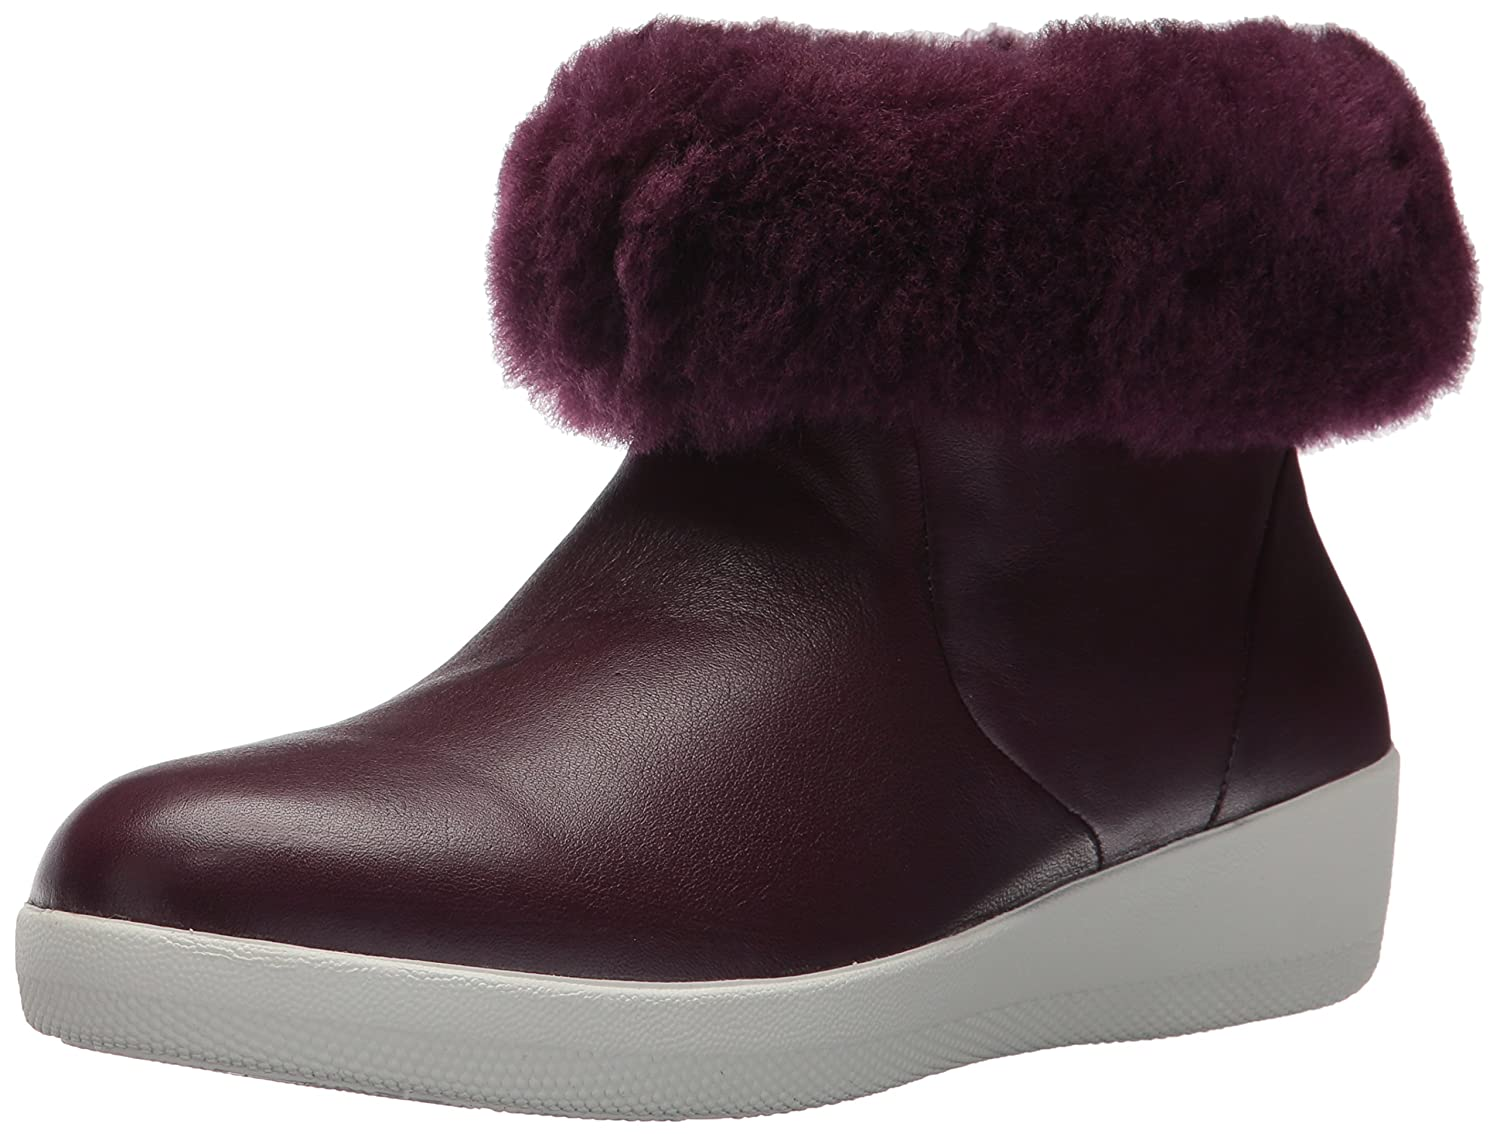 FitFlop Women's Skatebootie Leather Shearling Ankle Boot B0764G7KYG 6 B(M) US|Deep Plum